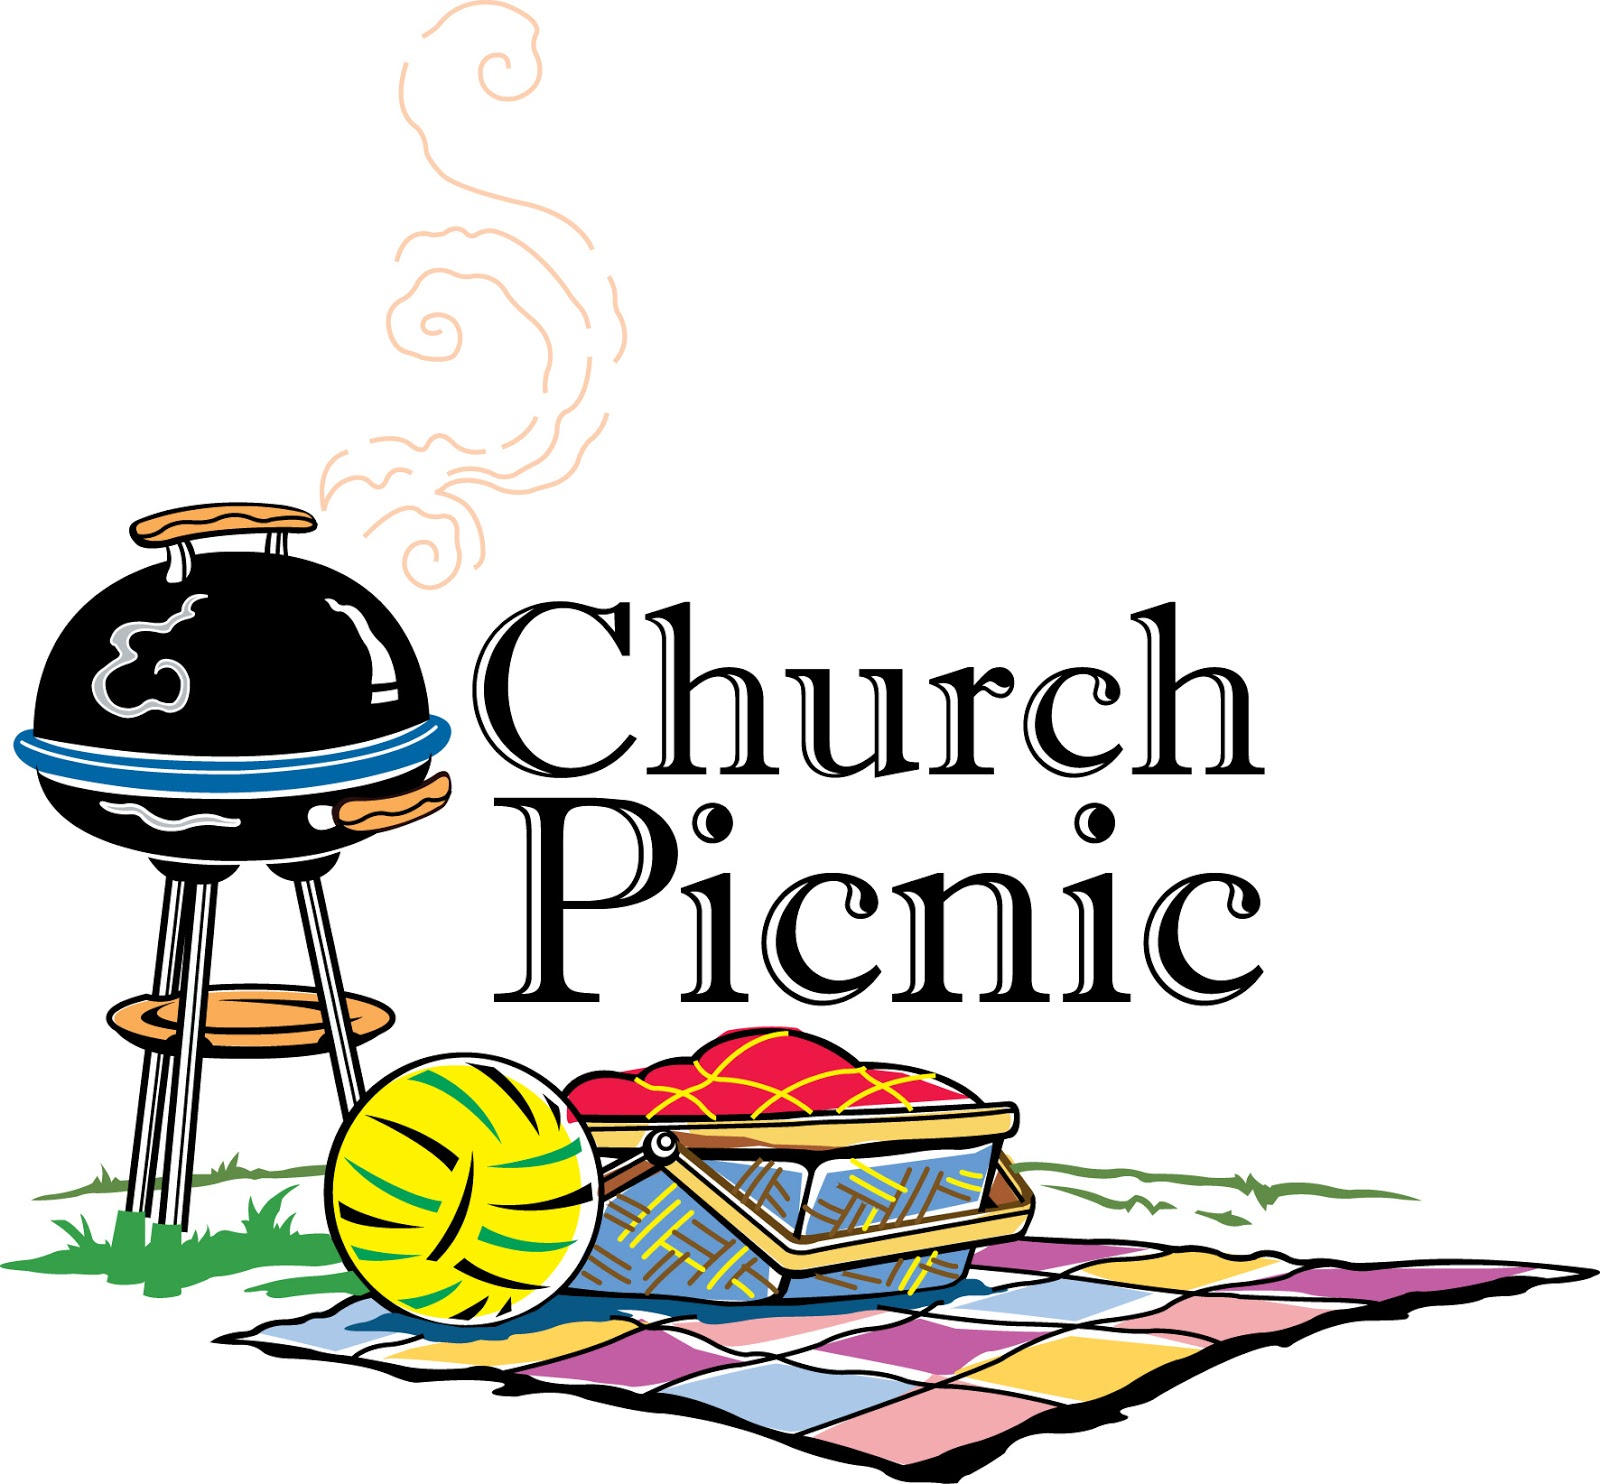 Picnic clipart free 5 » Clipart Station.